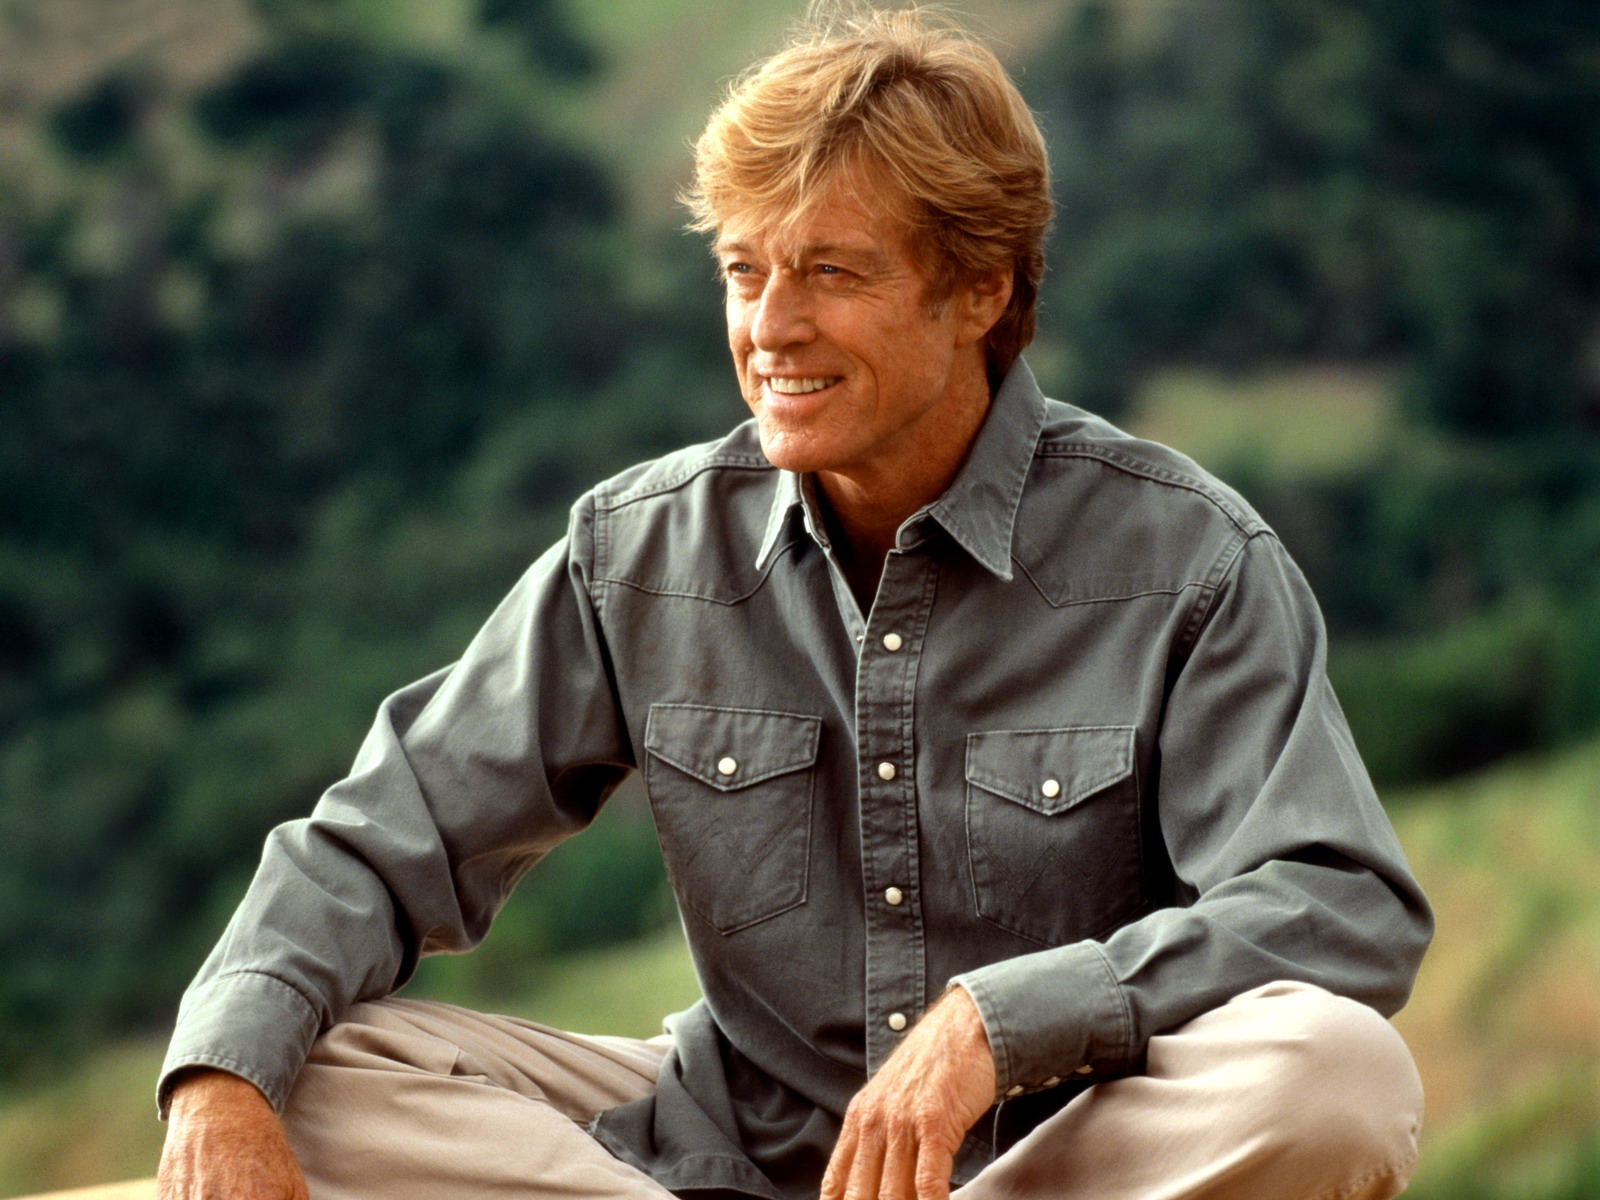 Robert Redford Wallpaper